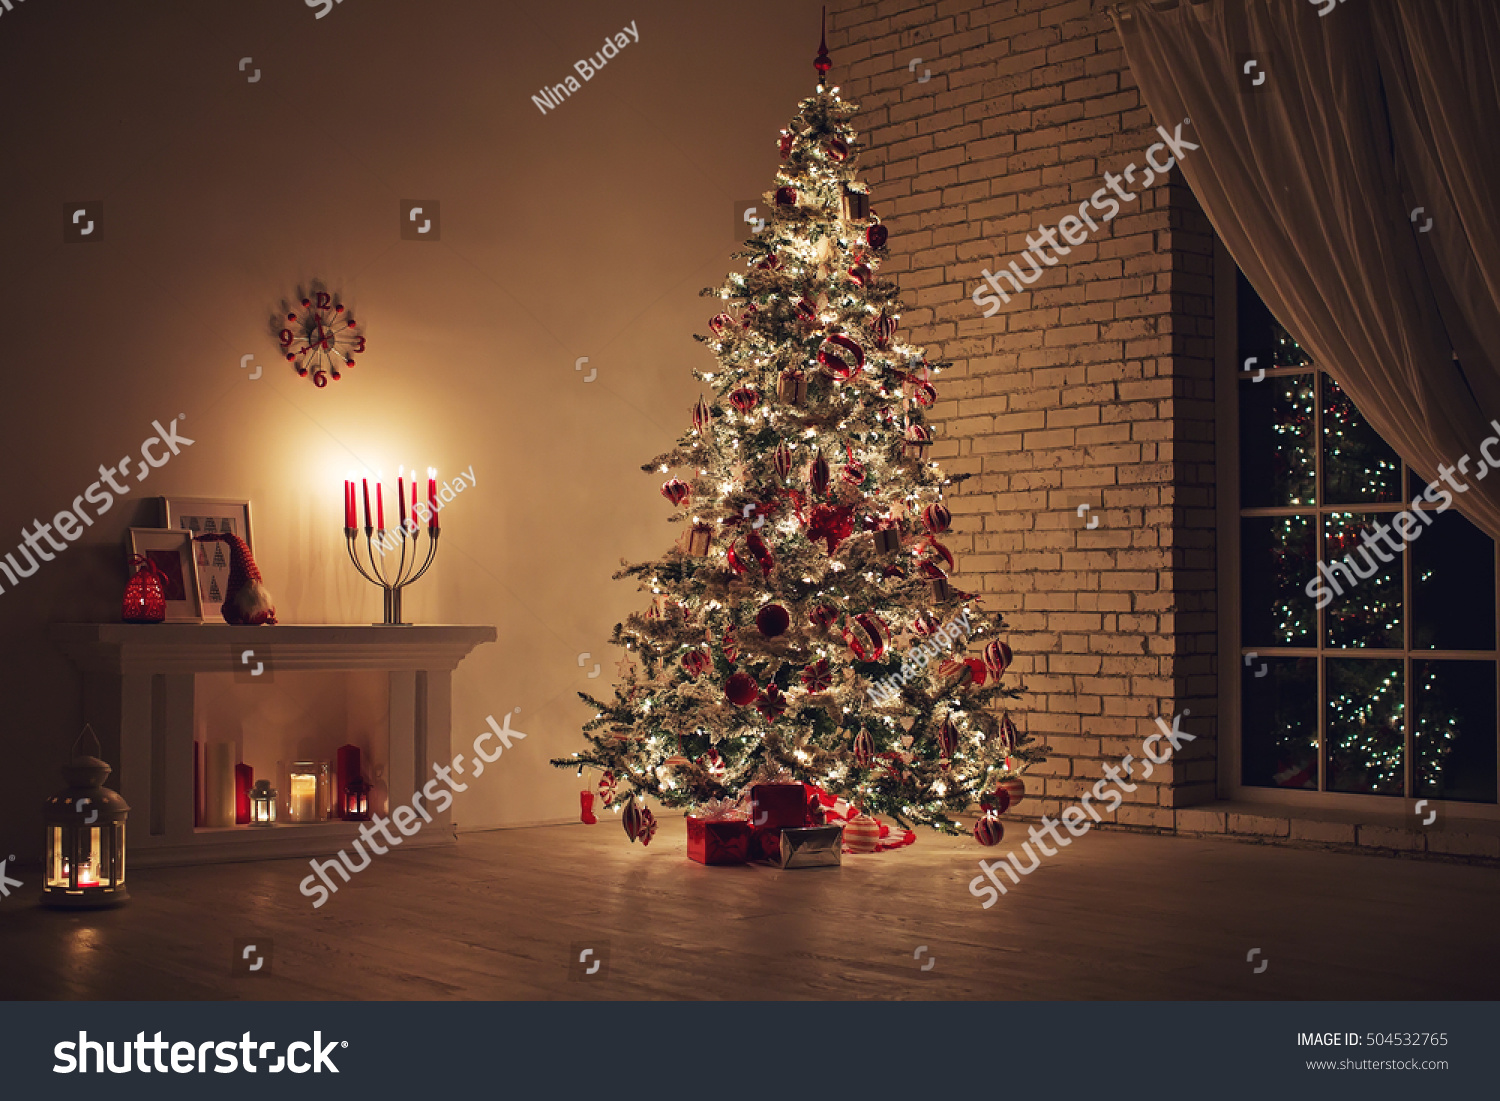 Feast of Christmas. Beautifully decorated house with a Christmas tree ipodarkami underneath #504532765